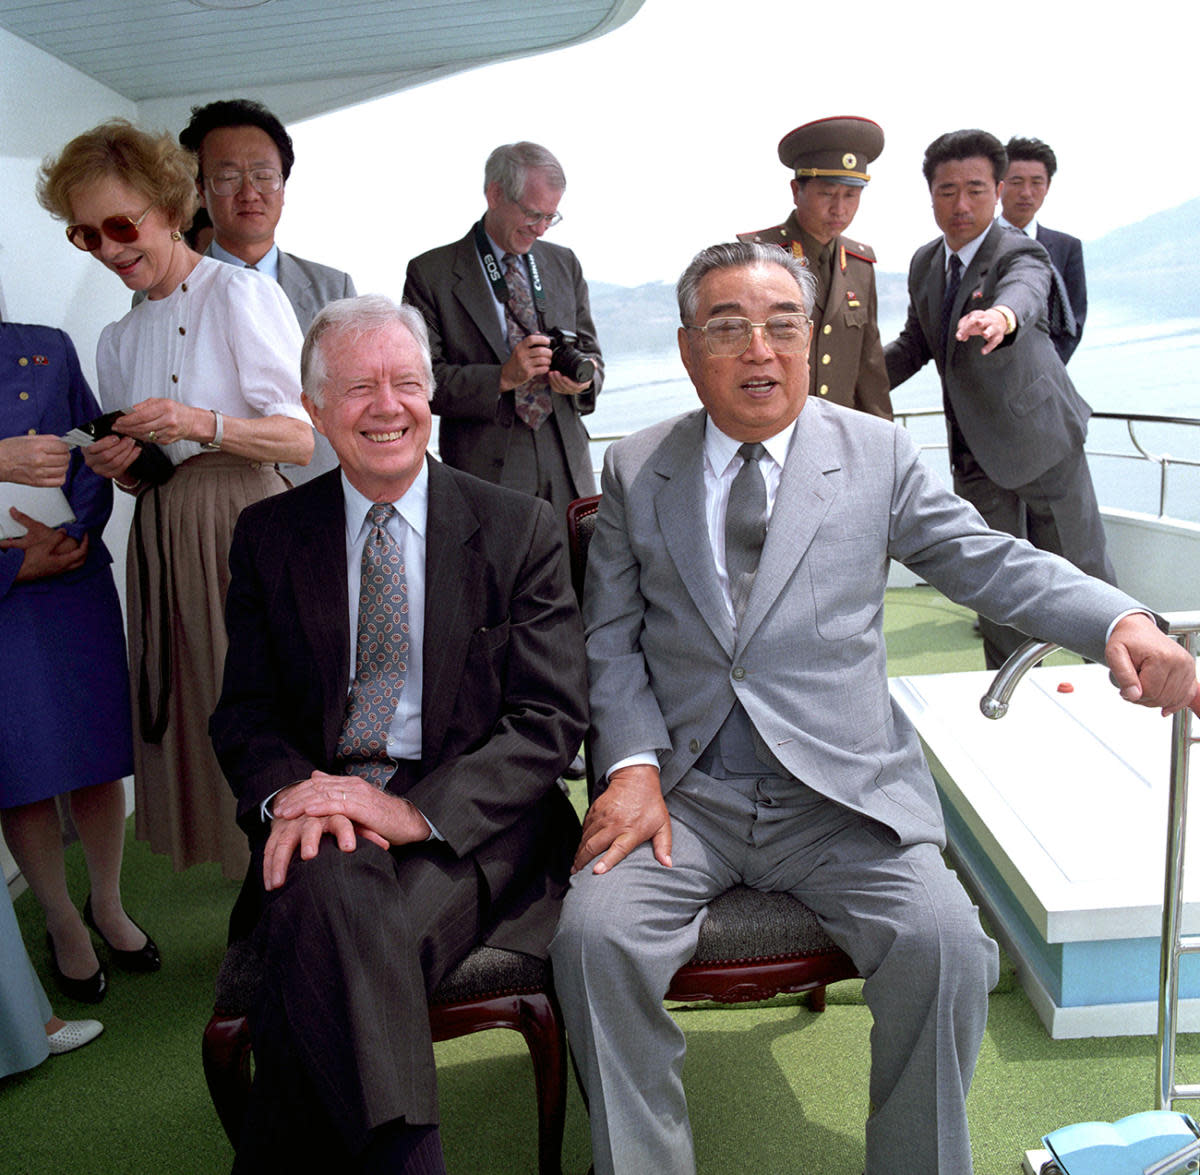 Former North Korea President Kim Il Sung sitting alongside former U.S. President Jimmy Carter in June 1994, just weeks before Kim's death. (Credit: Korean Central News Agency/AP Photo)